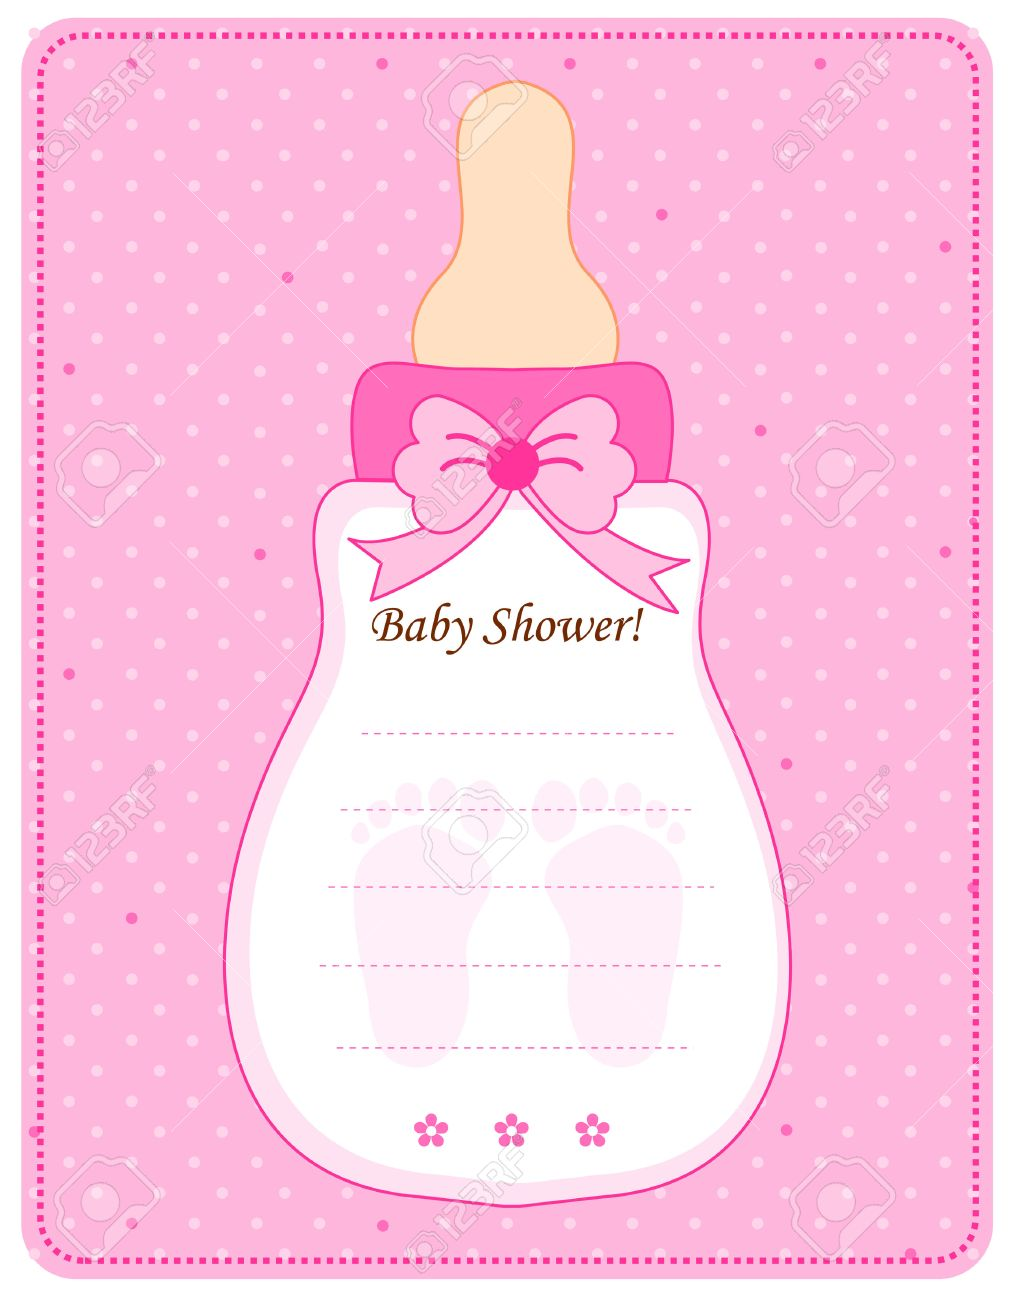 Cute Feeding Bottle Shaped Baby Shower Invitation Card Template ...